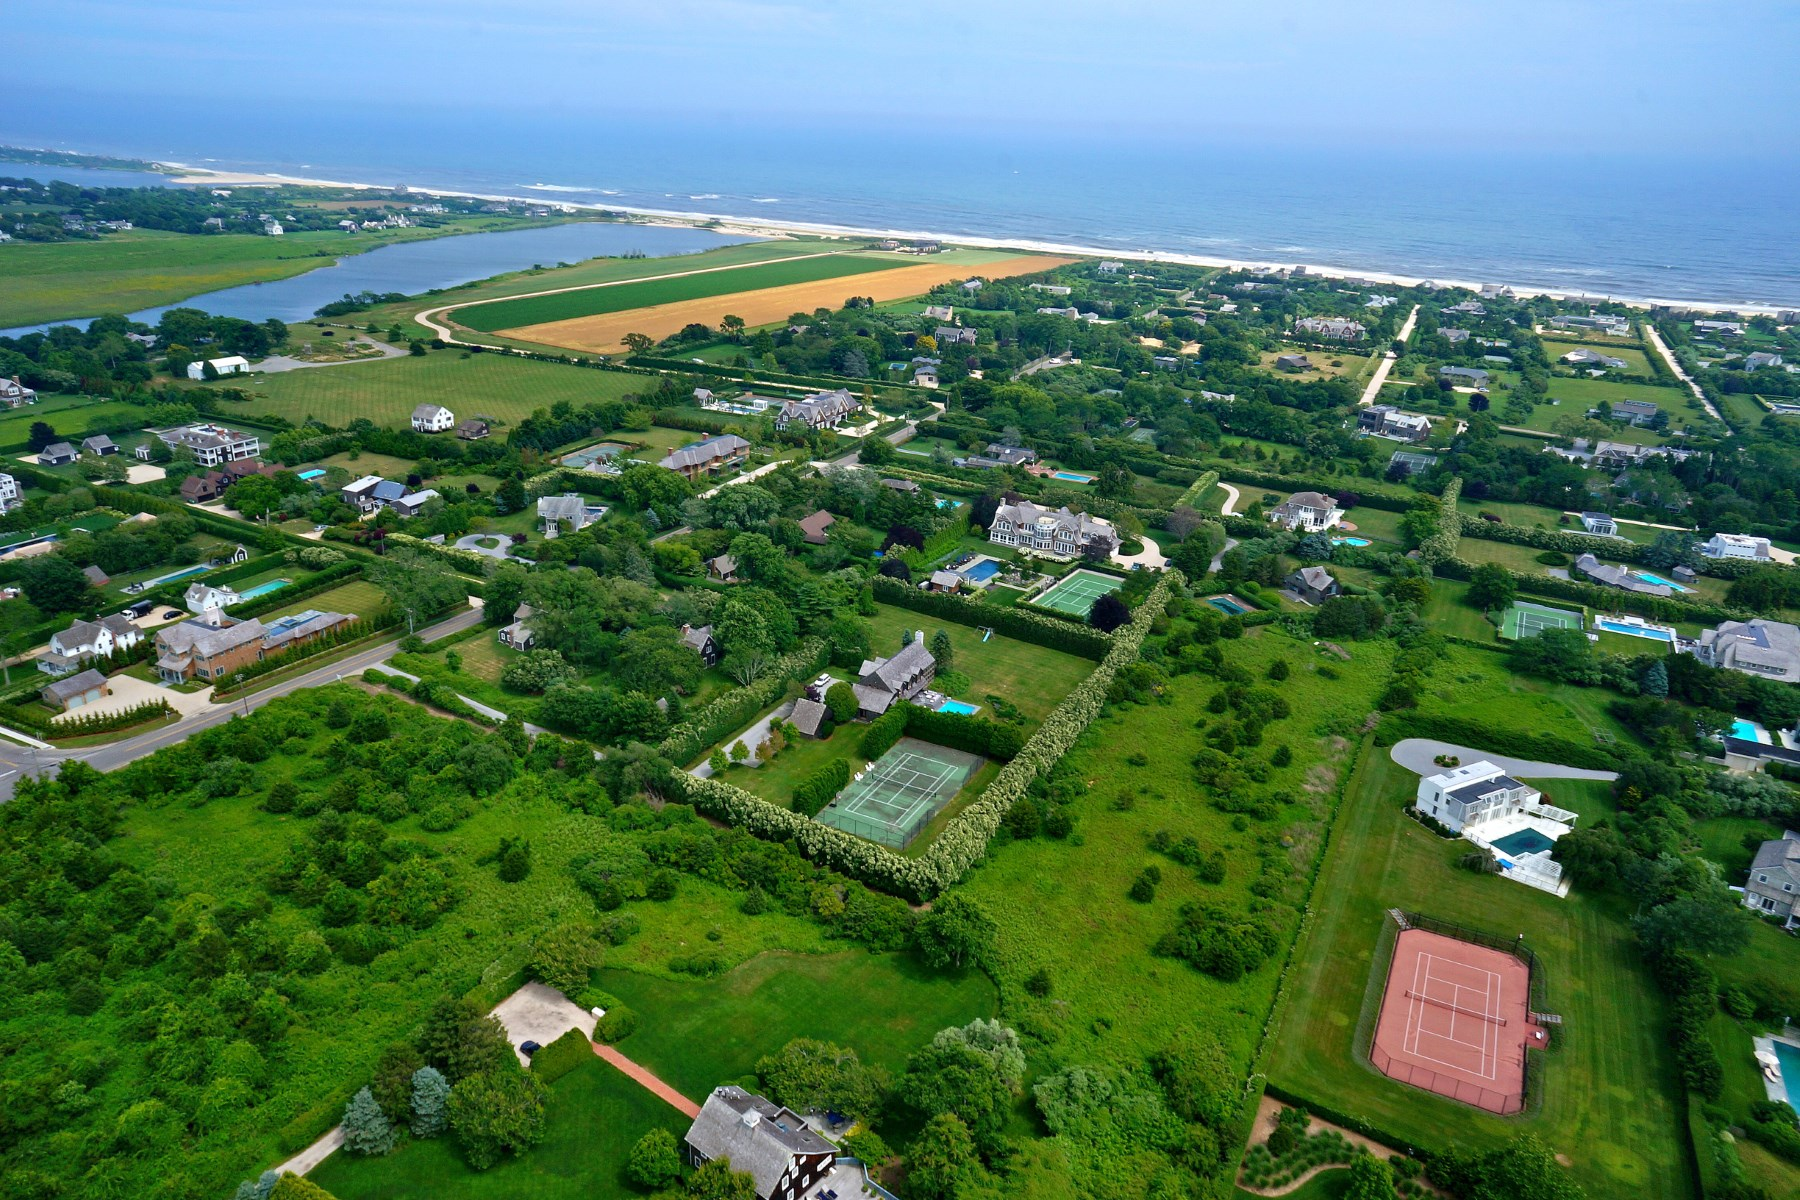 Land for Sale at Sagaponack South Privacy 342 Town Line Road Sagaponack, New York 11962